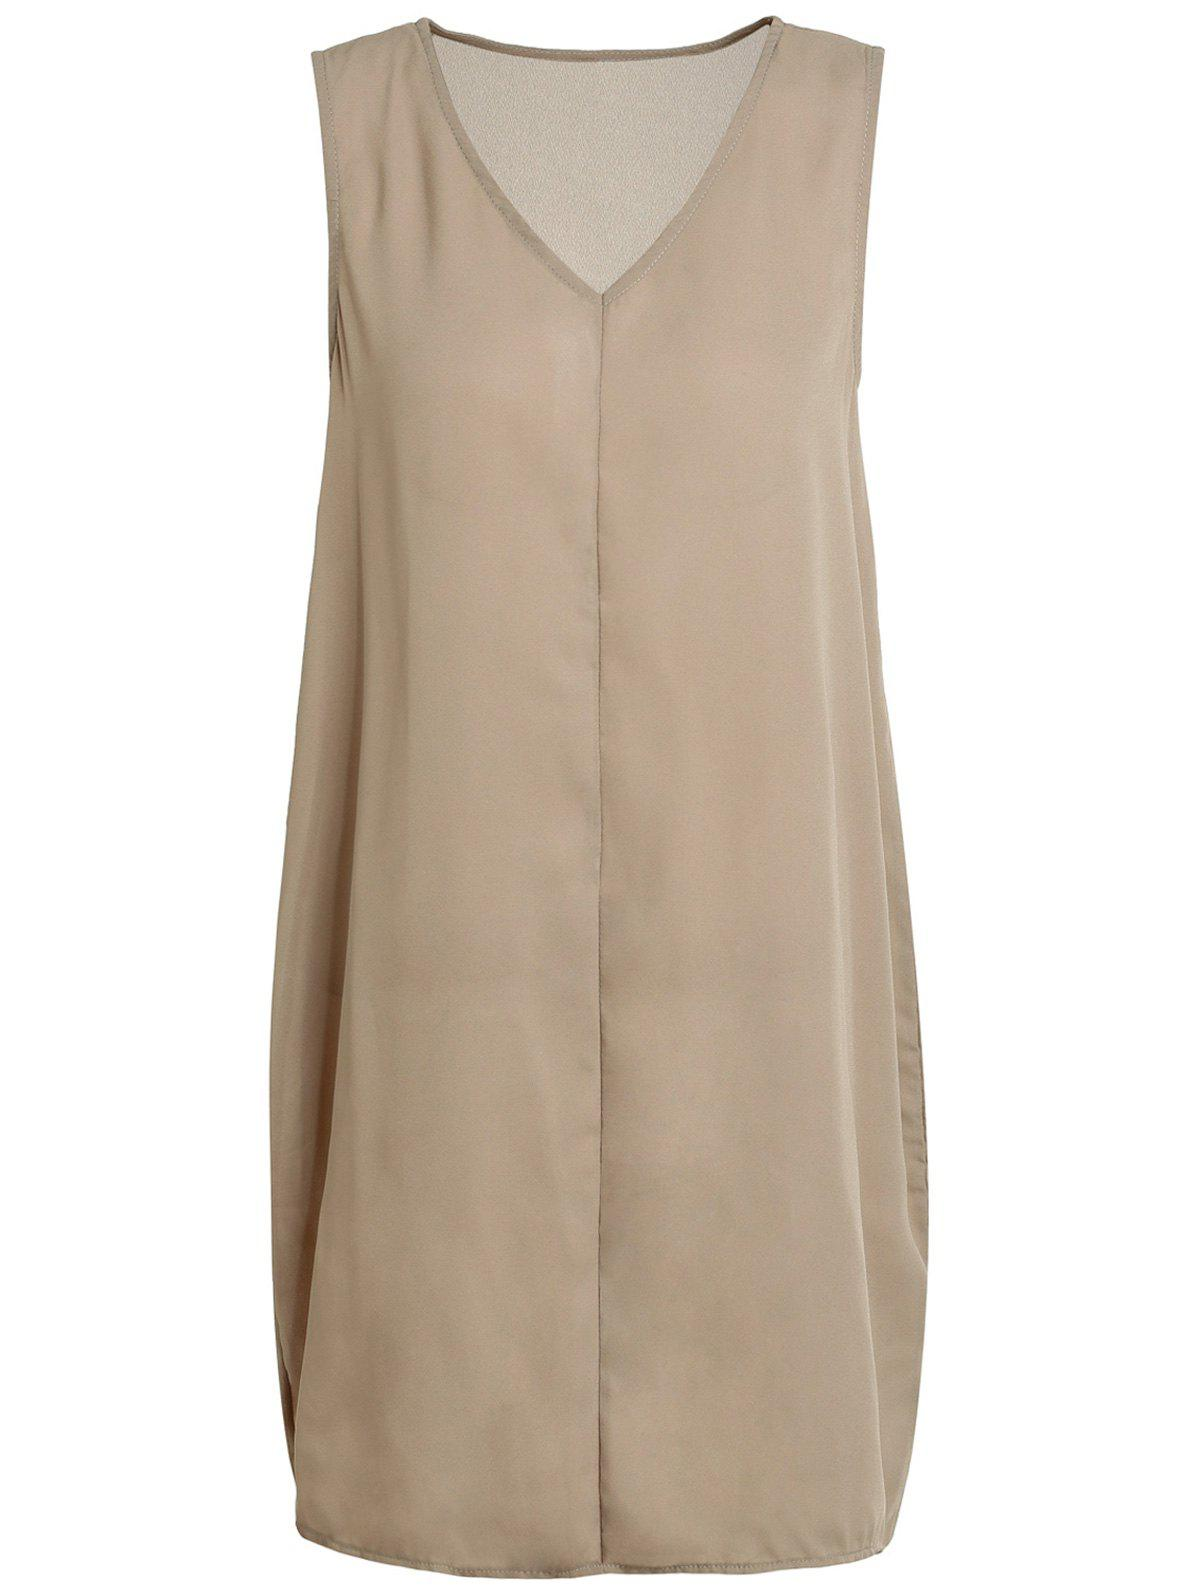 Brief Sleeveless V Neck Solid Color Women's Dress - COFFEE S